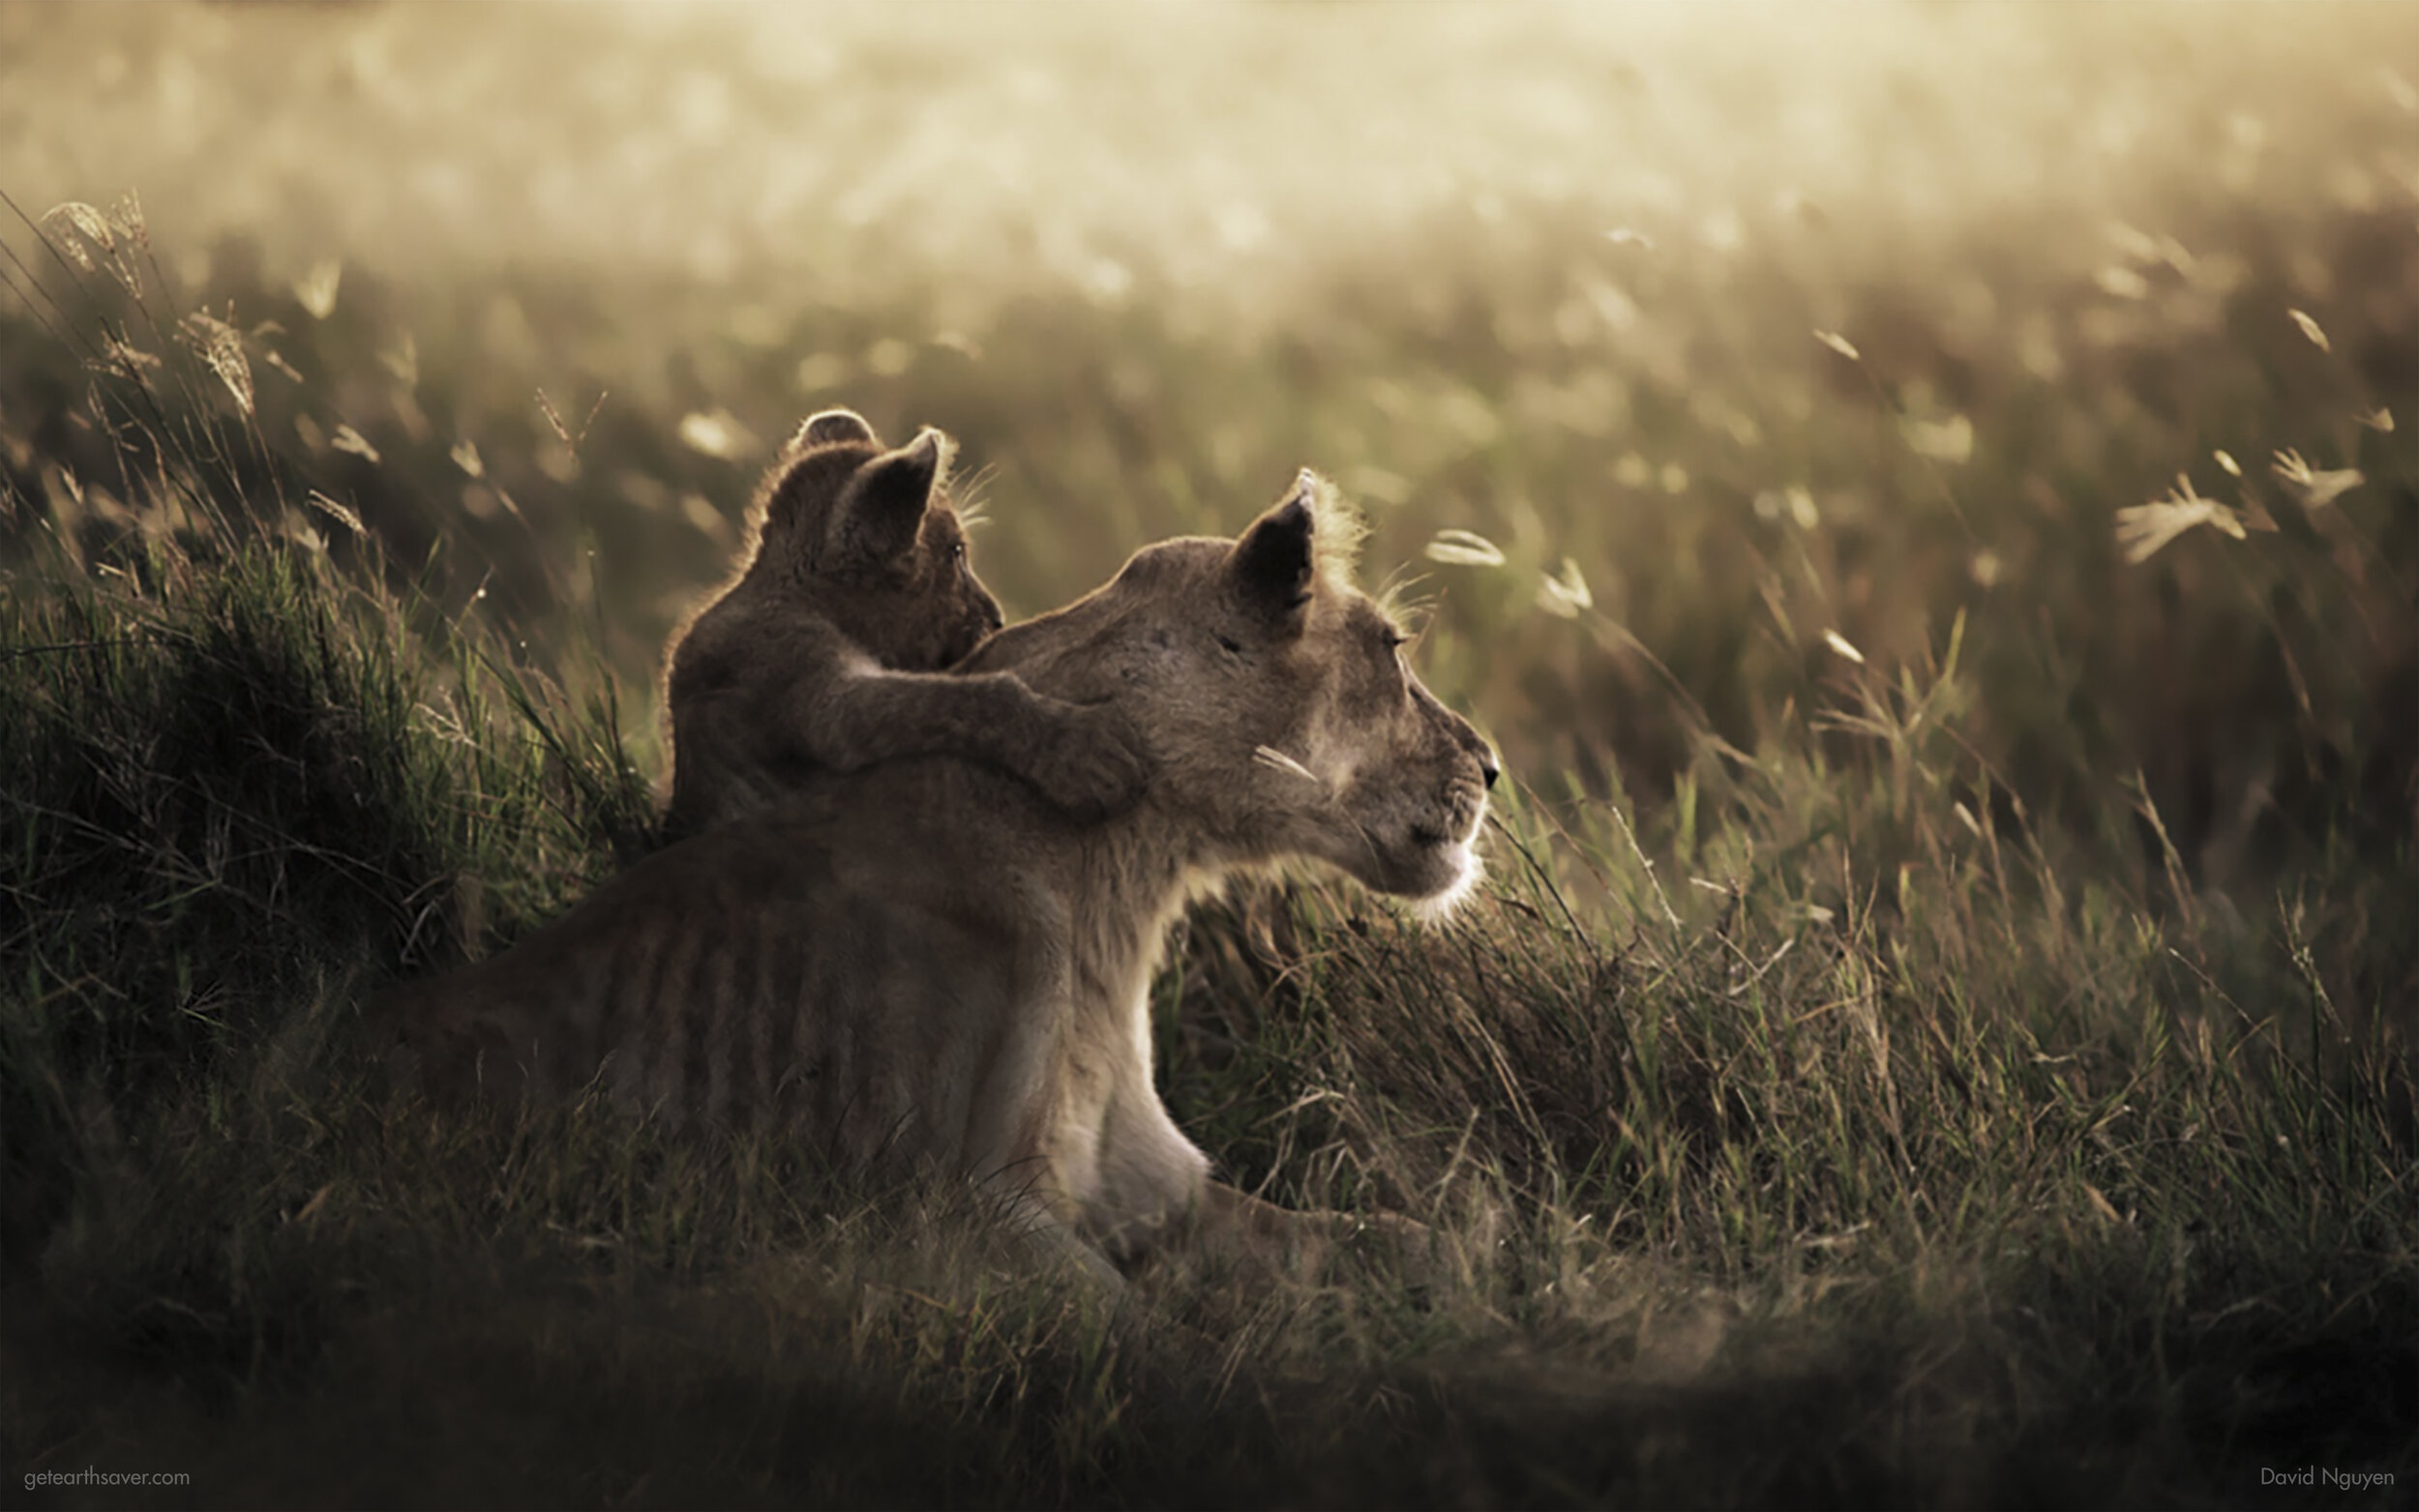 The lioness and cub are starving and sitting in dry grass.